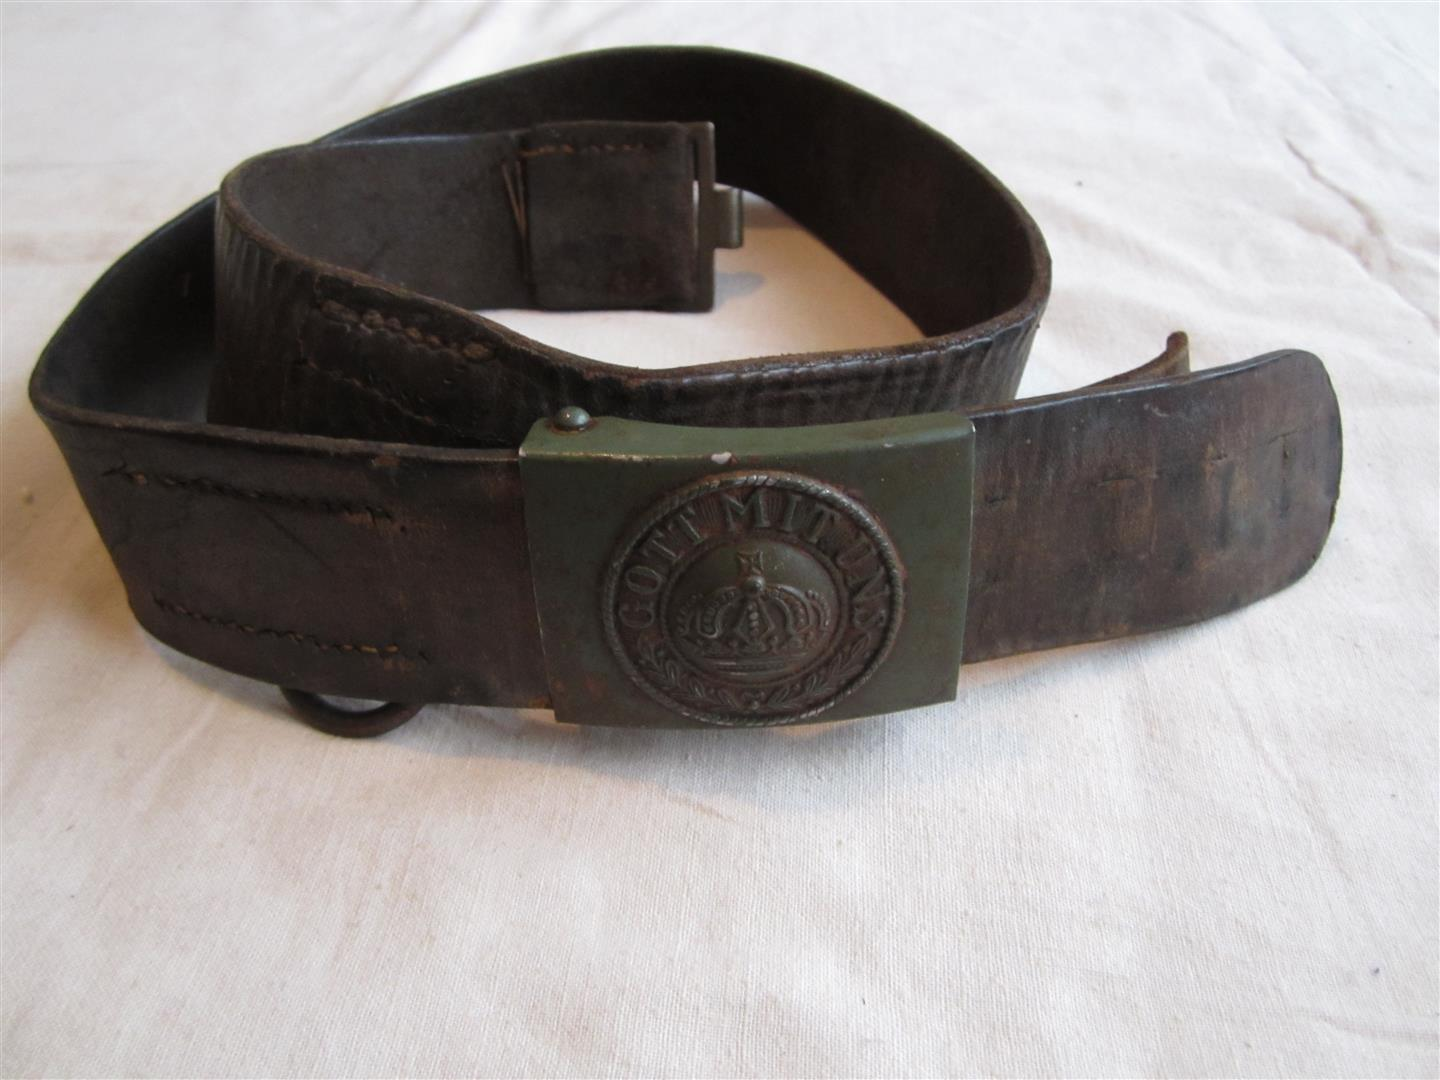 WW1 German Belt & Buckle